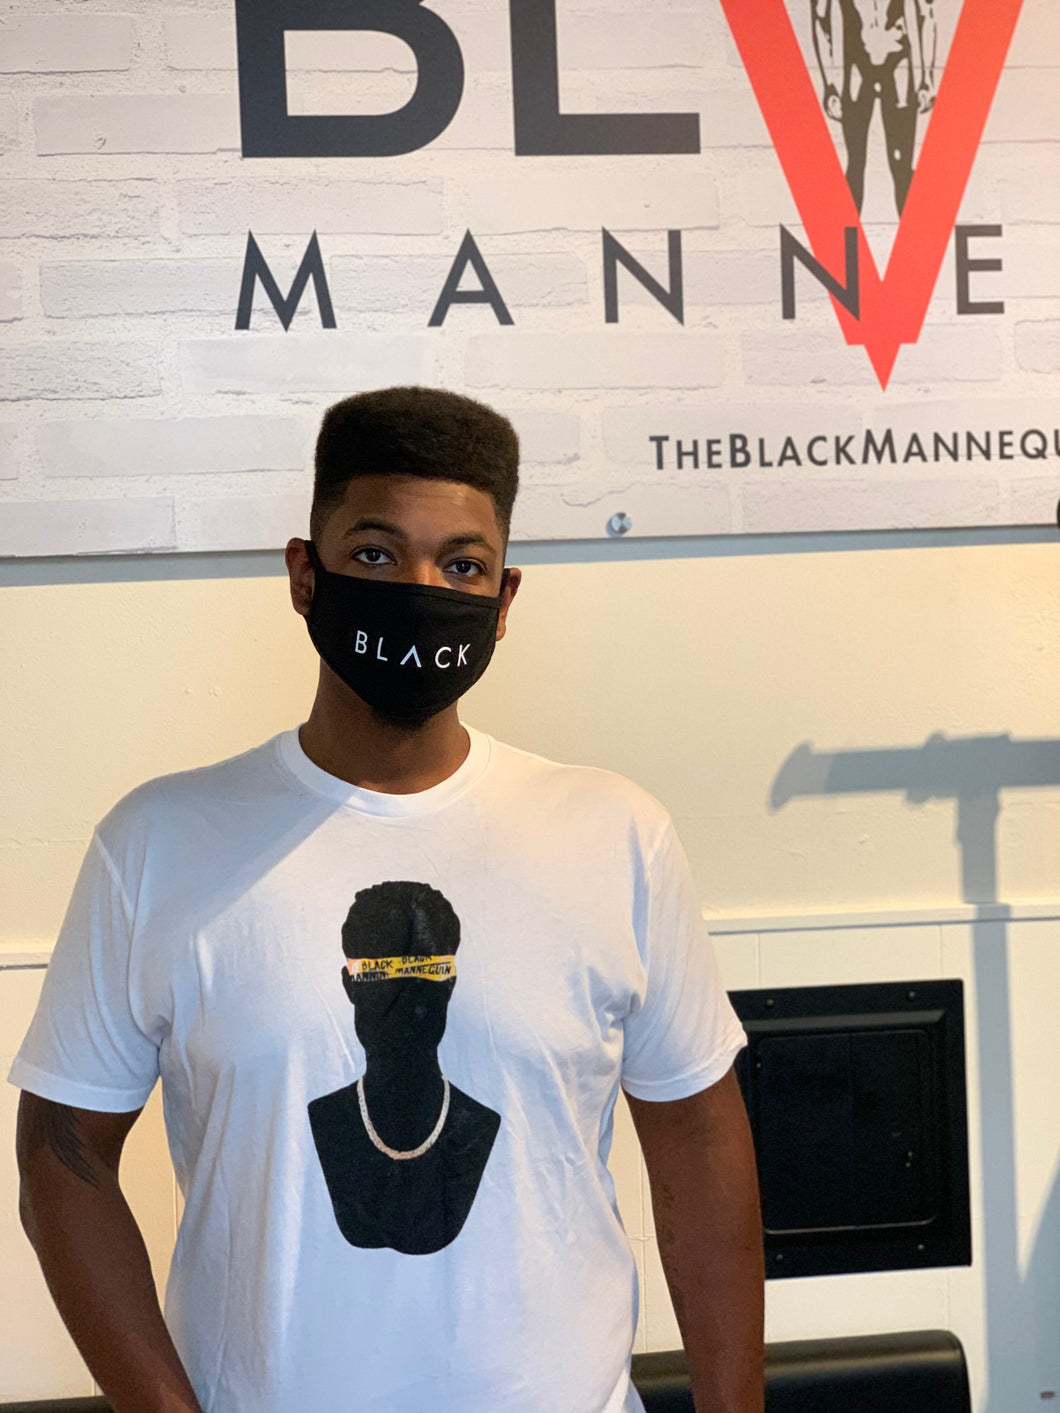 BLACK MANNEQUIN - Black Manne-Mask